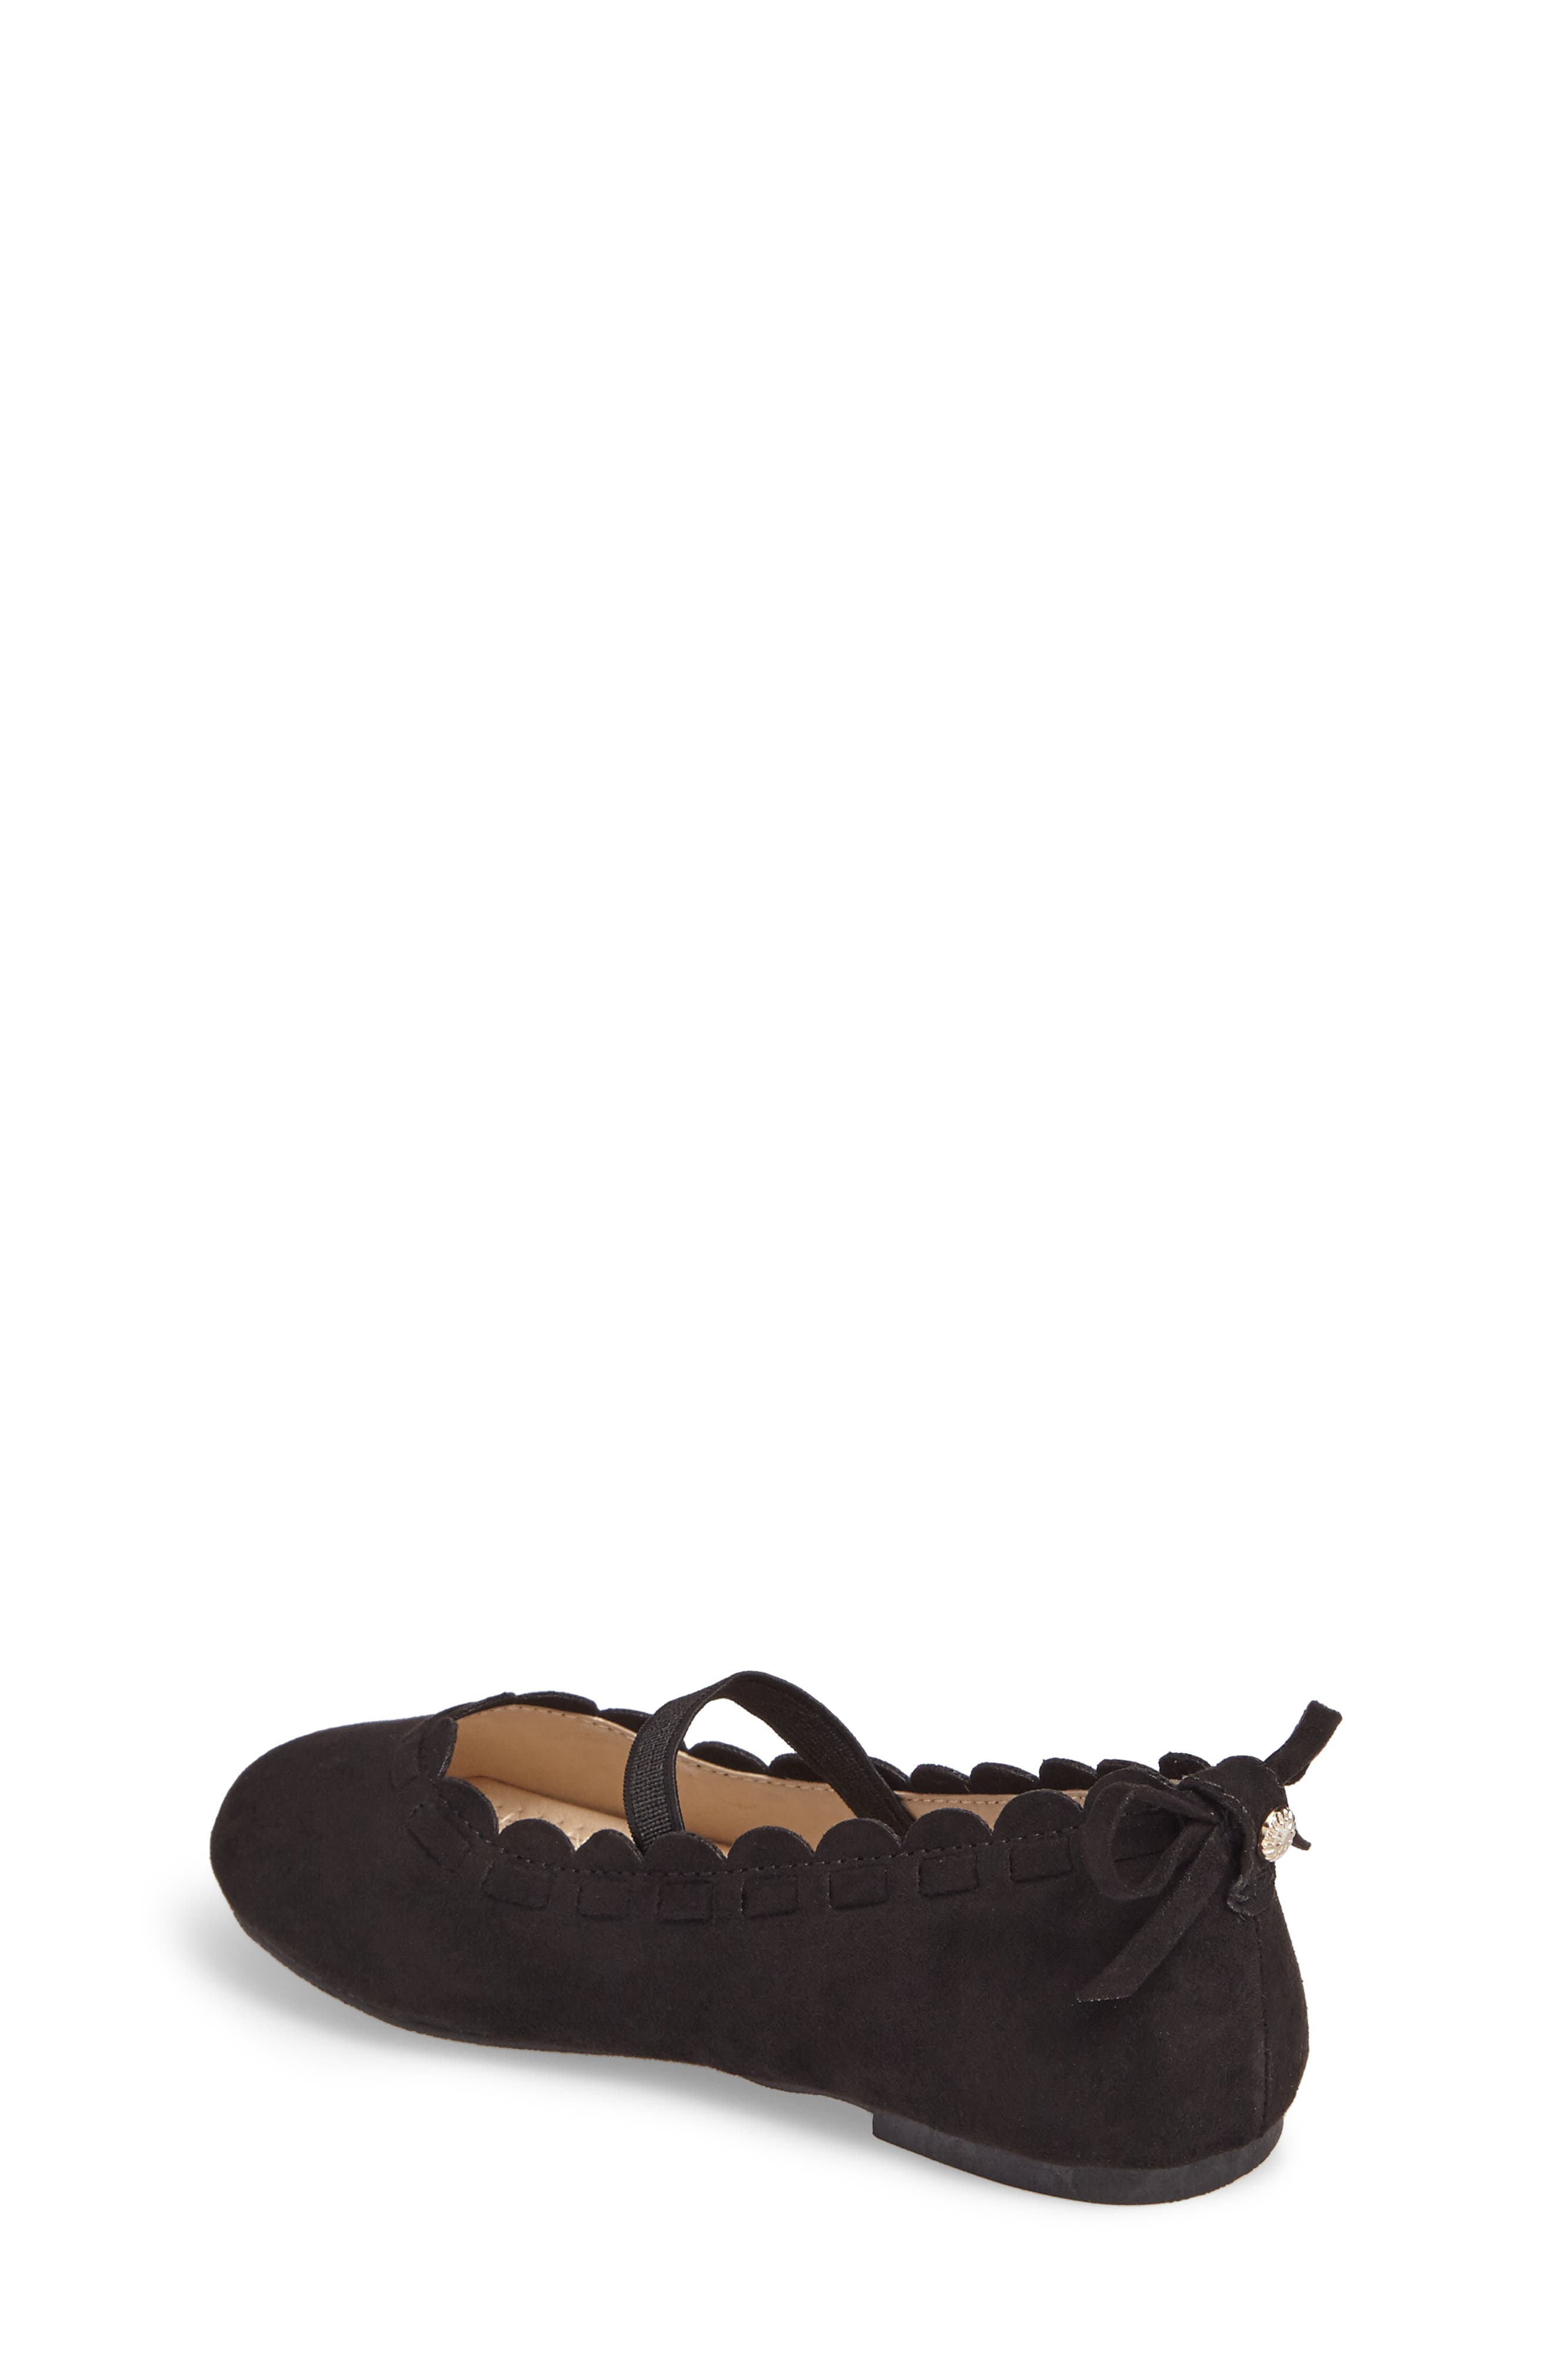 Little Miss Lucie Scalloped Mary Jane Flat,                             Alternate thumbnail 2, color,                             001